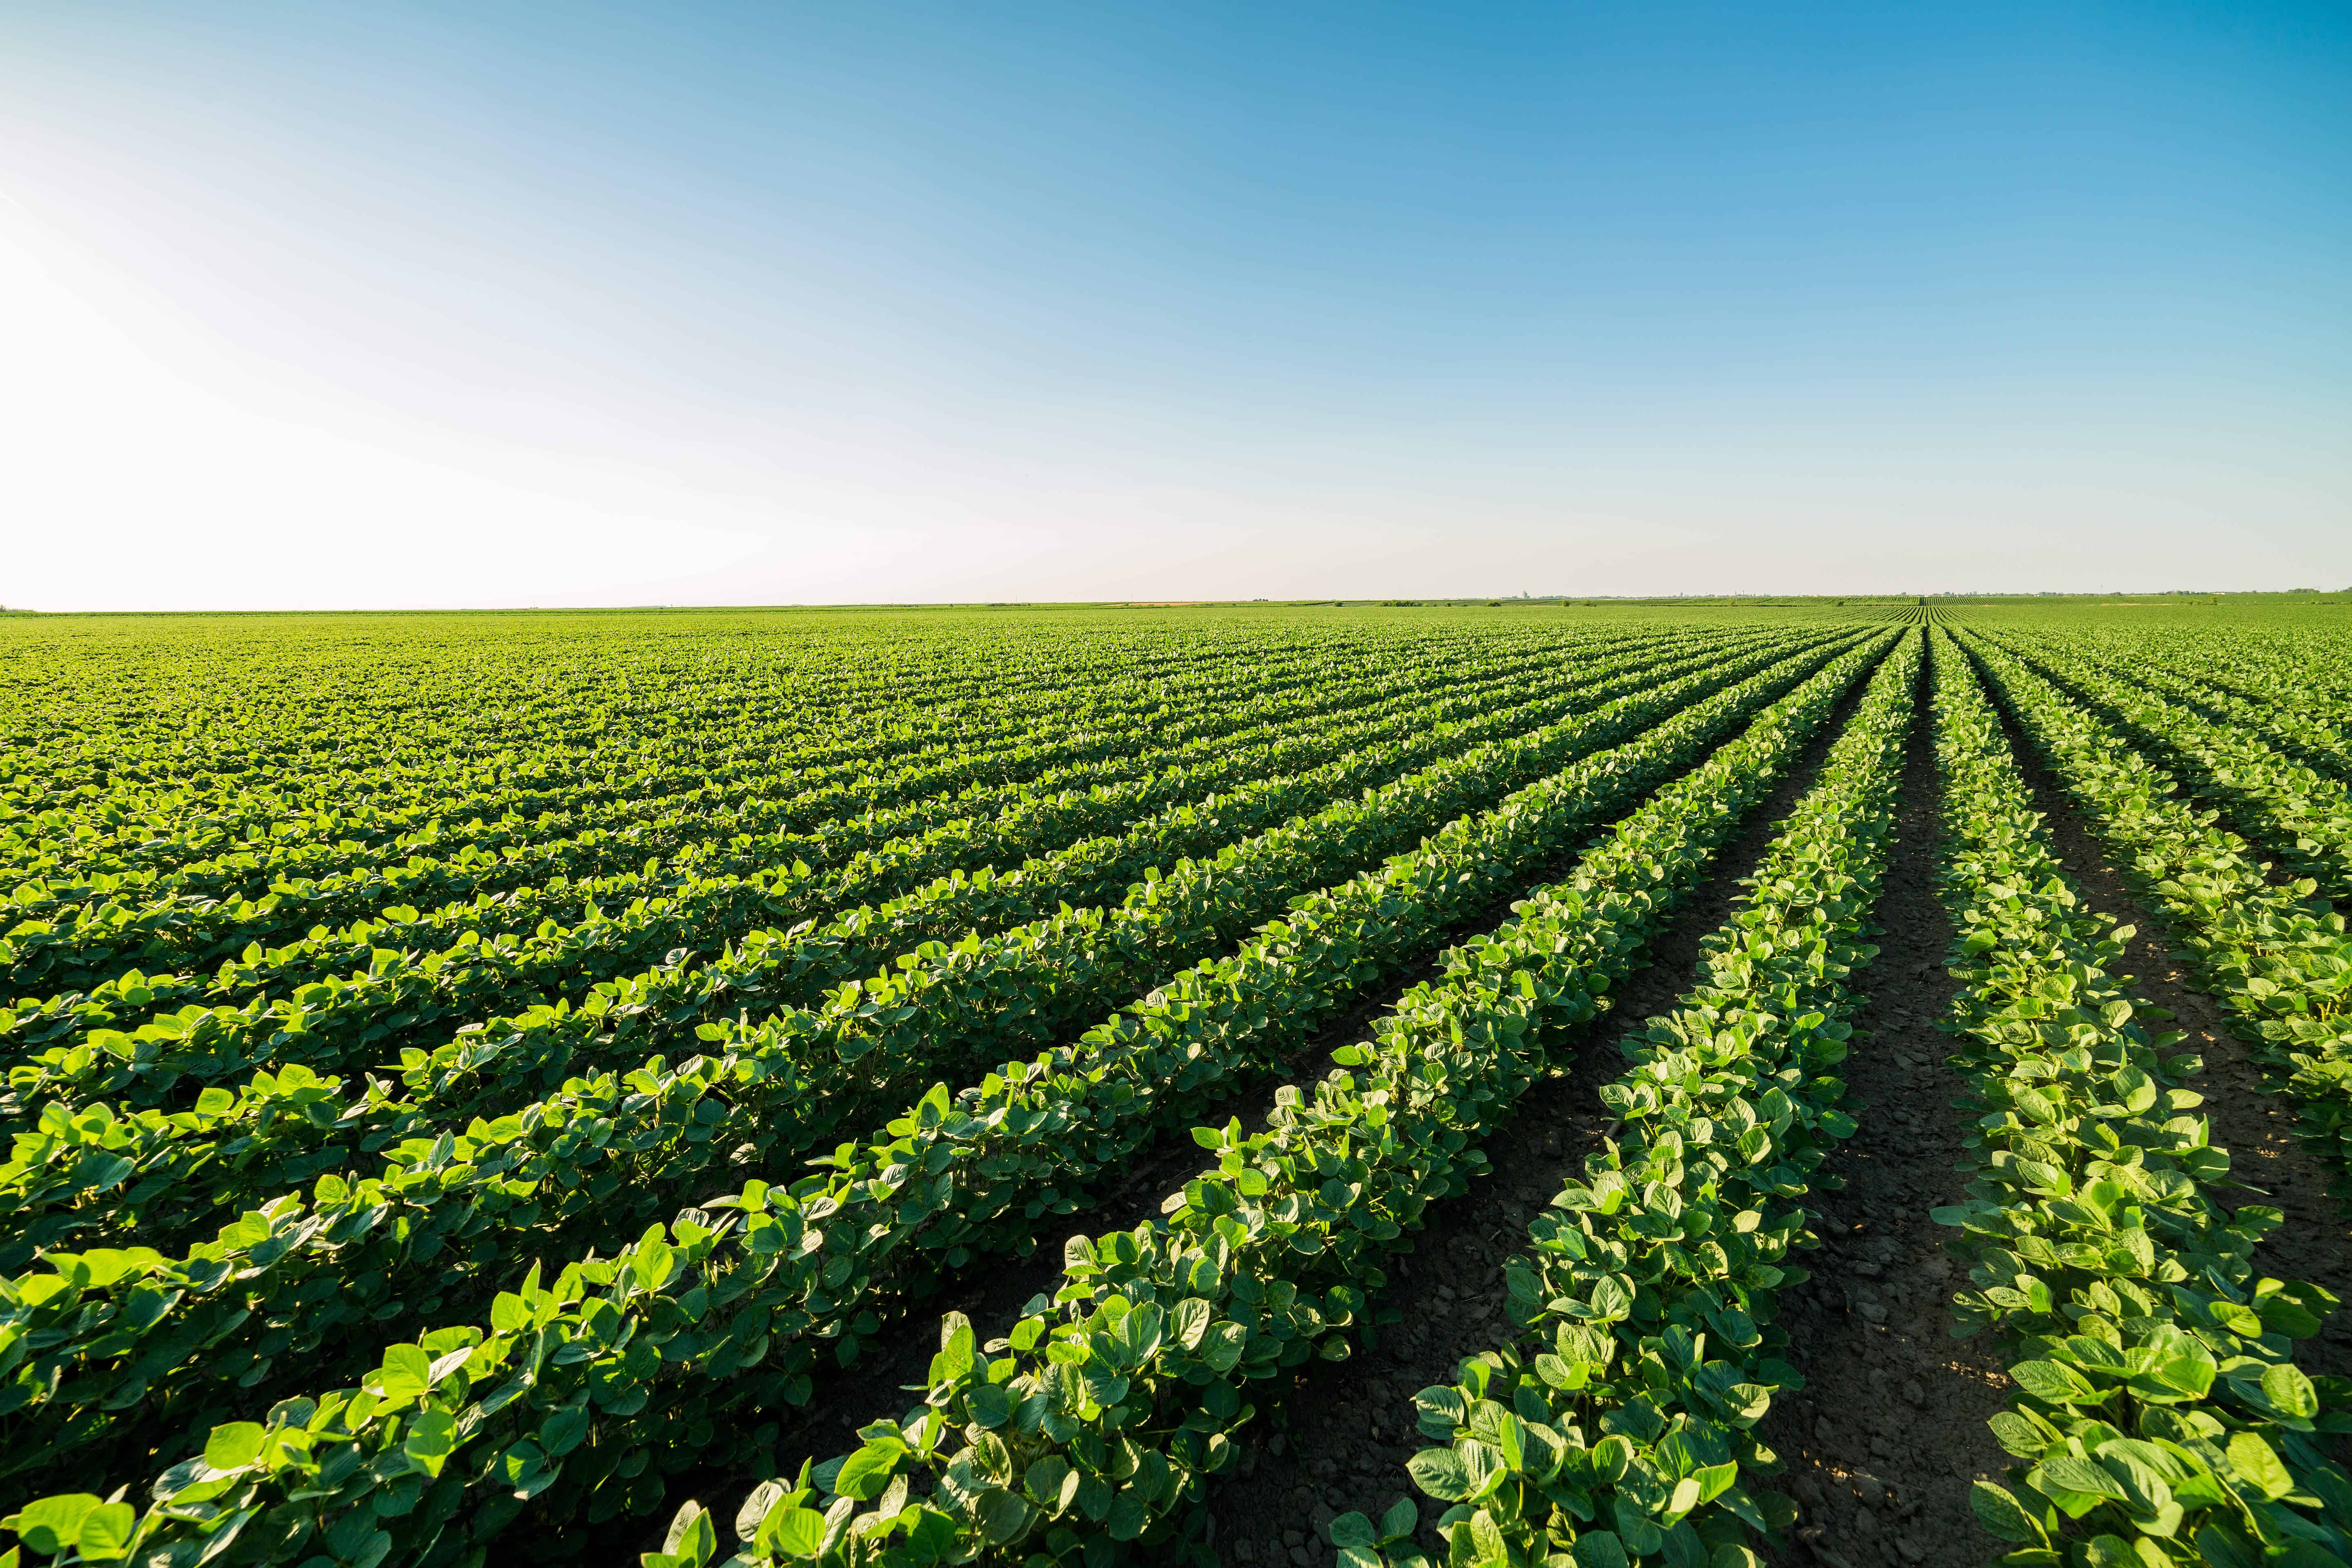 soybean field, agricultural landscape